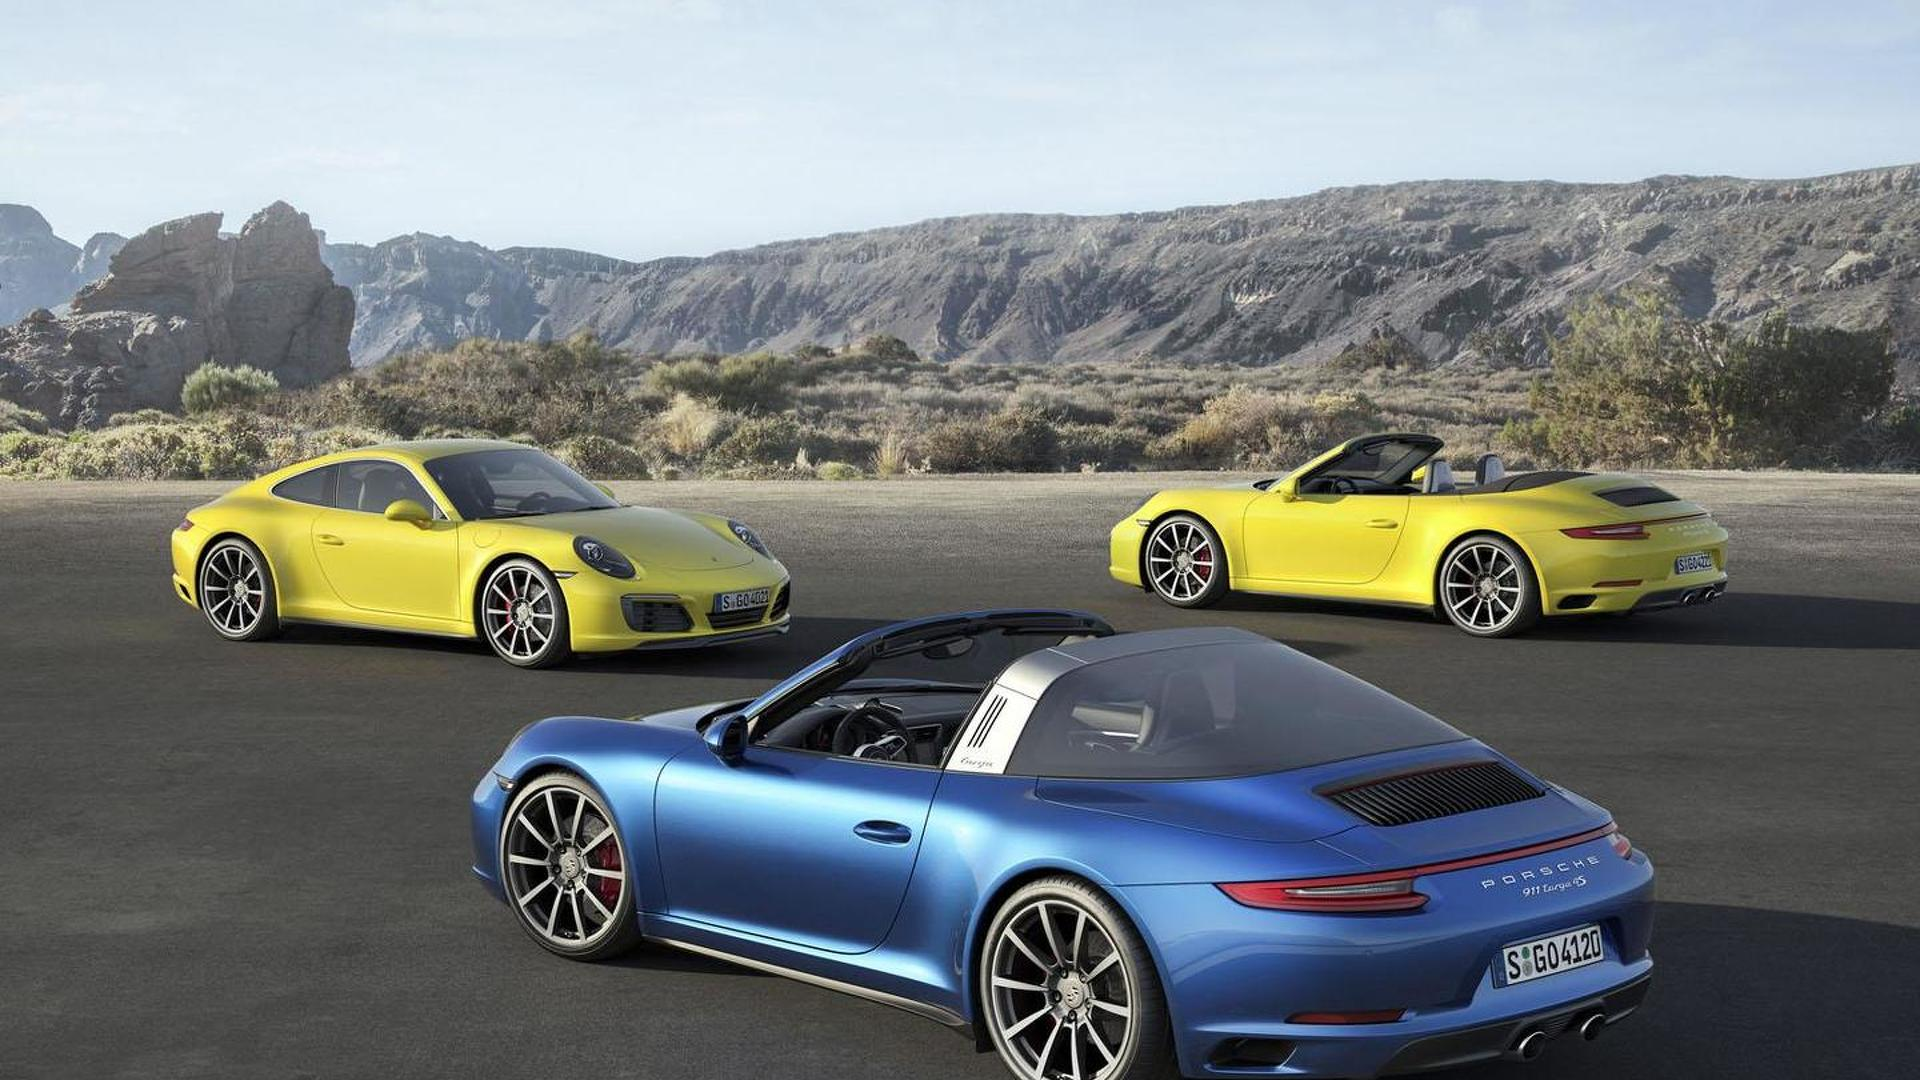 Porsche 911 Carrera S Gets 30 hp Power Boost, New Equipment